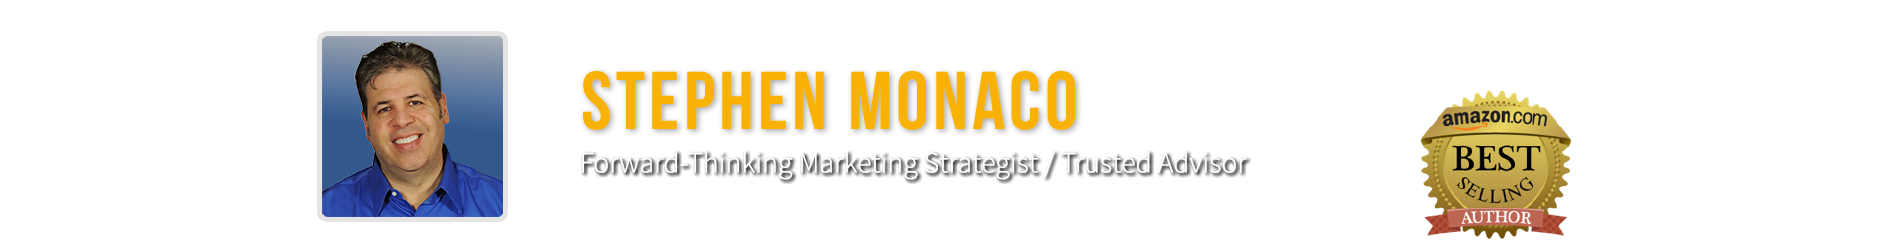 Stephen Monaco - Marketing Strategist